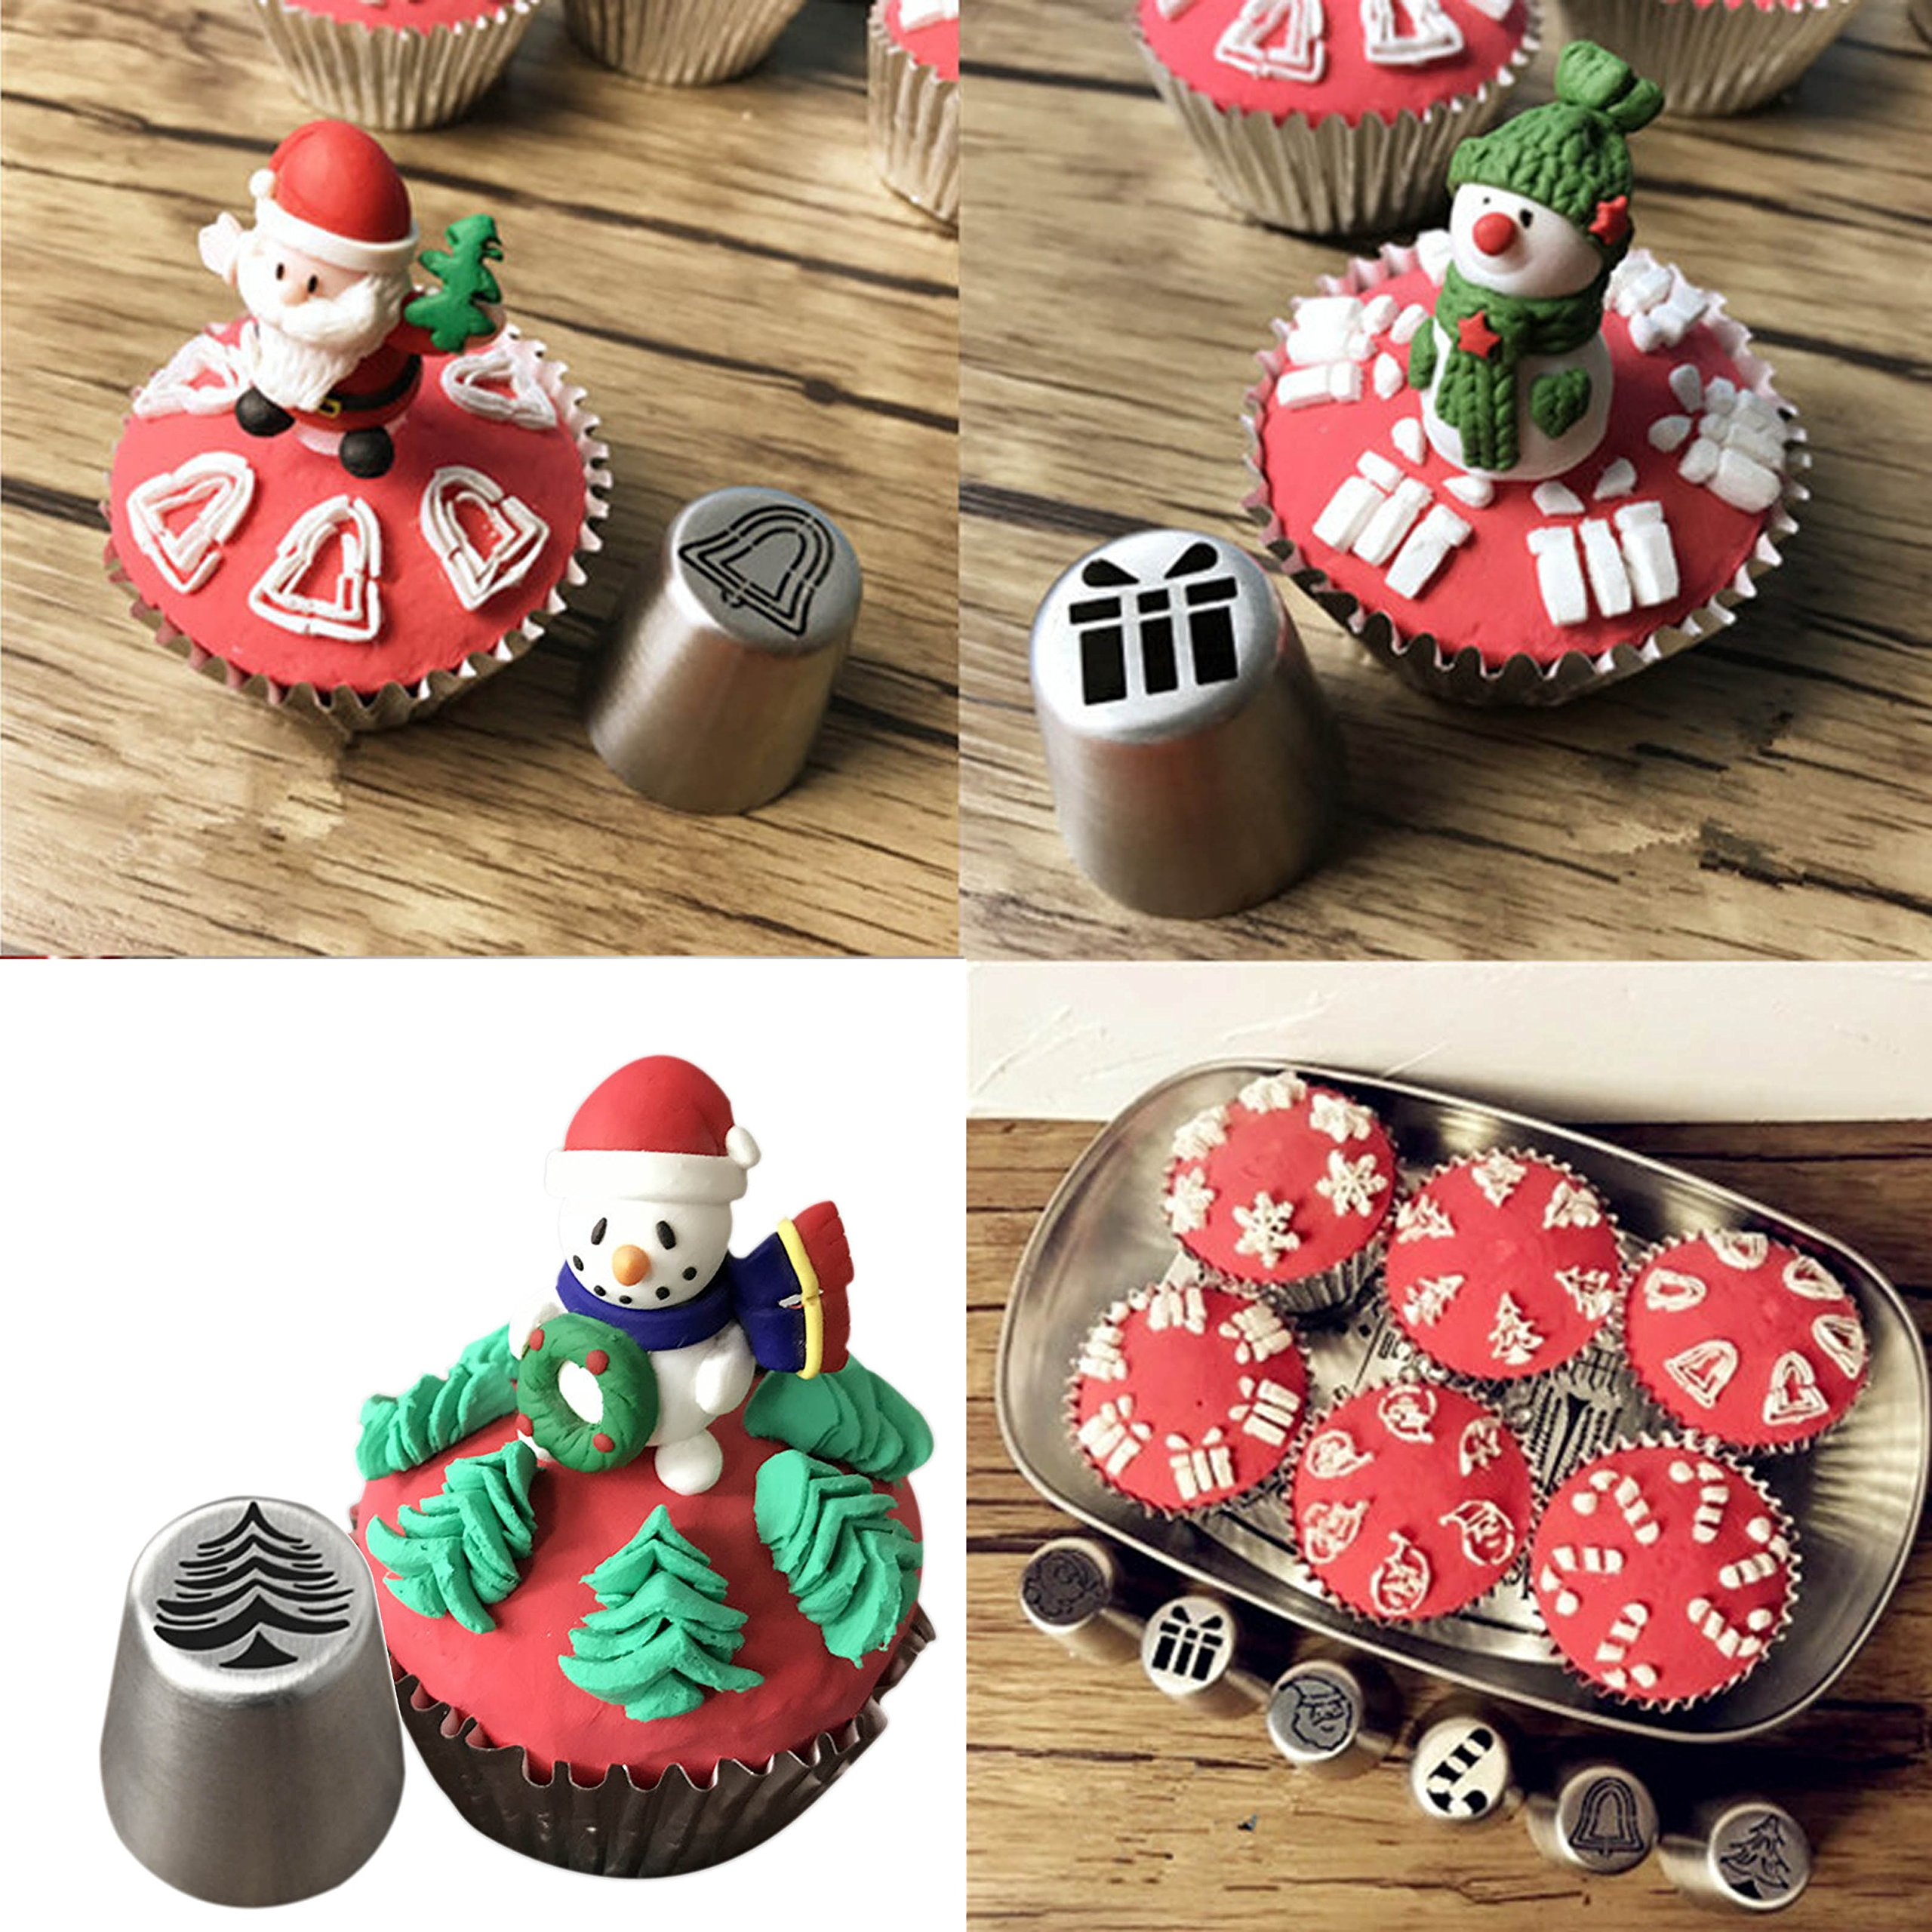 JJMG NEW Russian Icing Piping Tips Christmas Design For Cakes Cupcakes Cookies - Decoration Pastry Baking Tools by JJMG (Image #2)